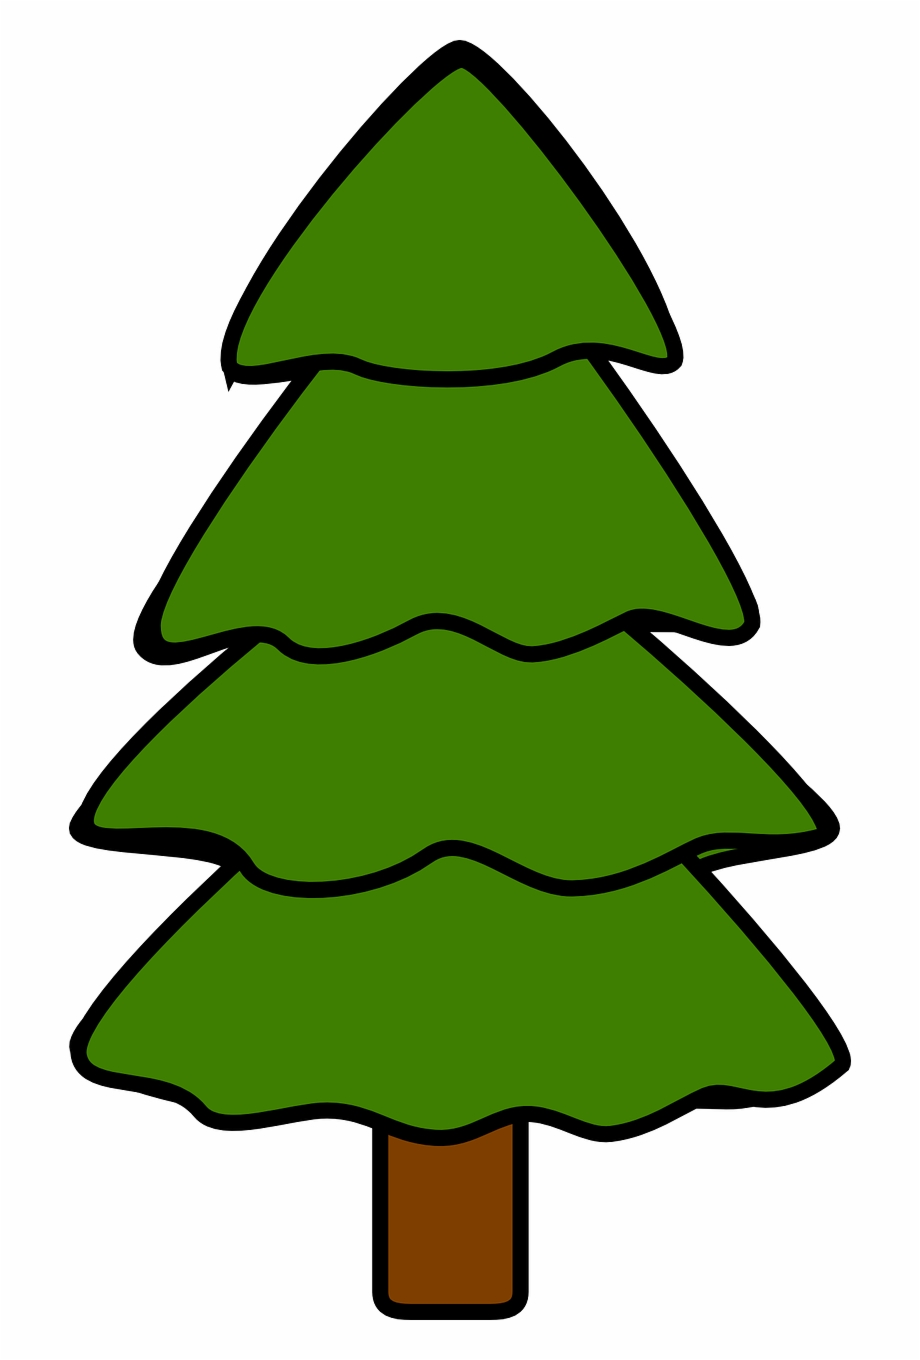 Spruce clipart png transparent library Tree Fir Pine Spruce Nature Png Image - Clip Art Fir Tree ... png transparent library